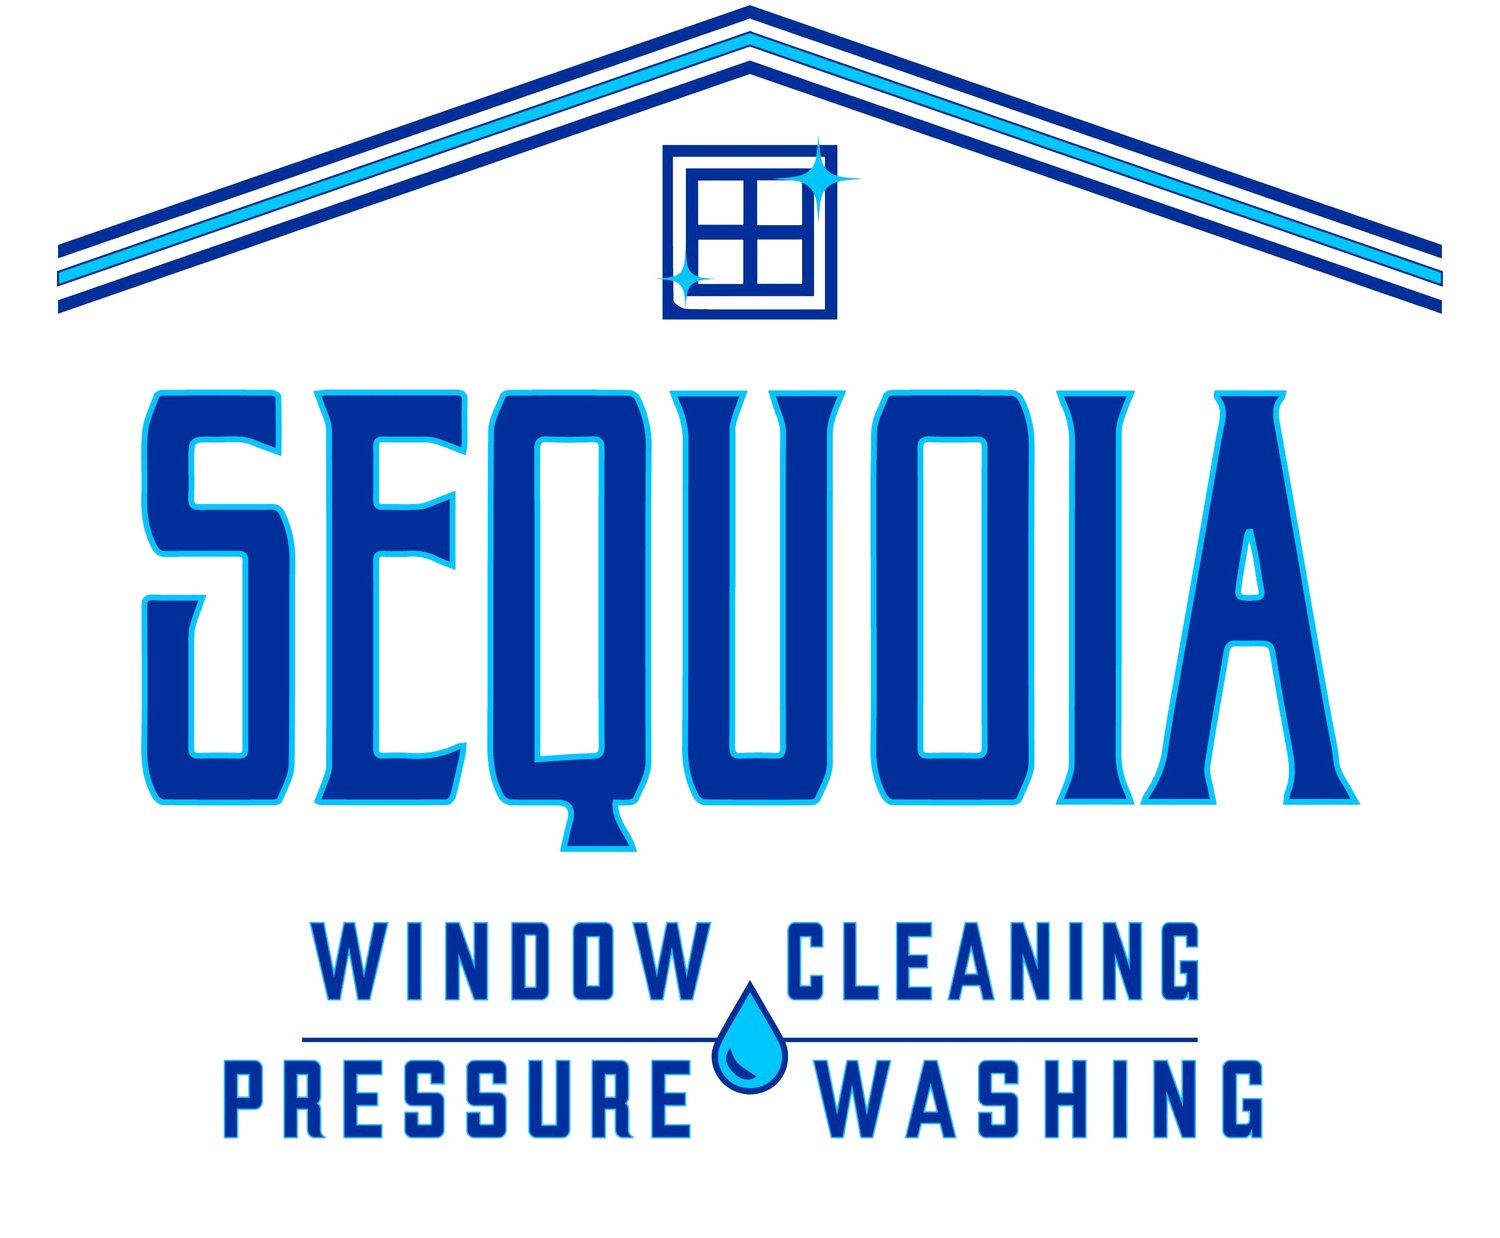 Sequoia Window Cleaning & Pressure Washing